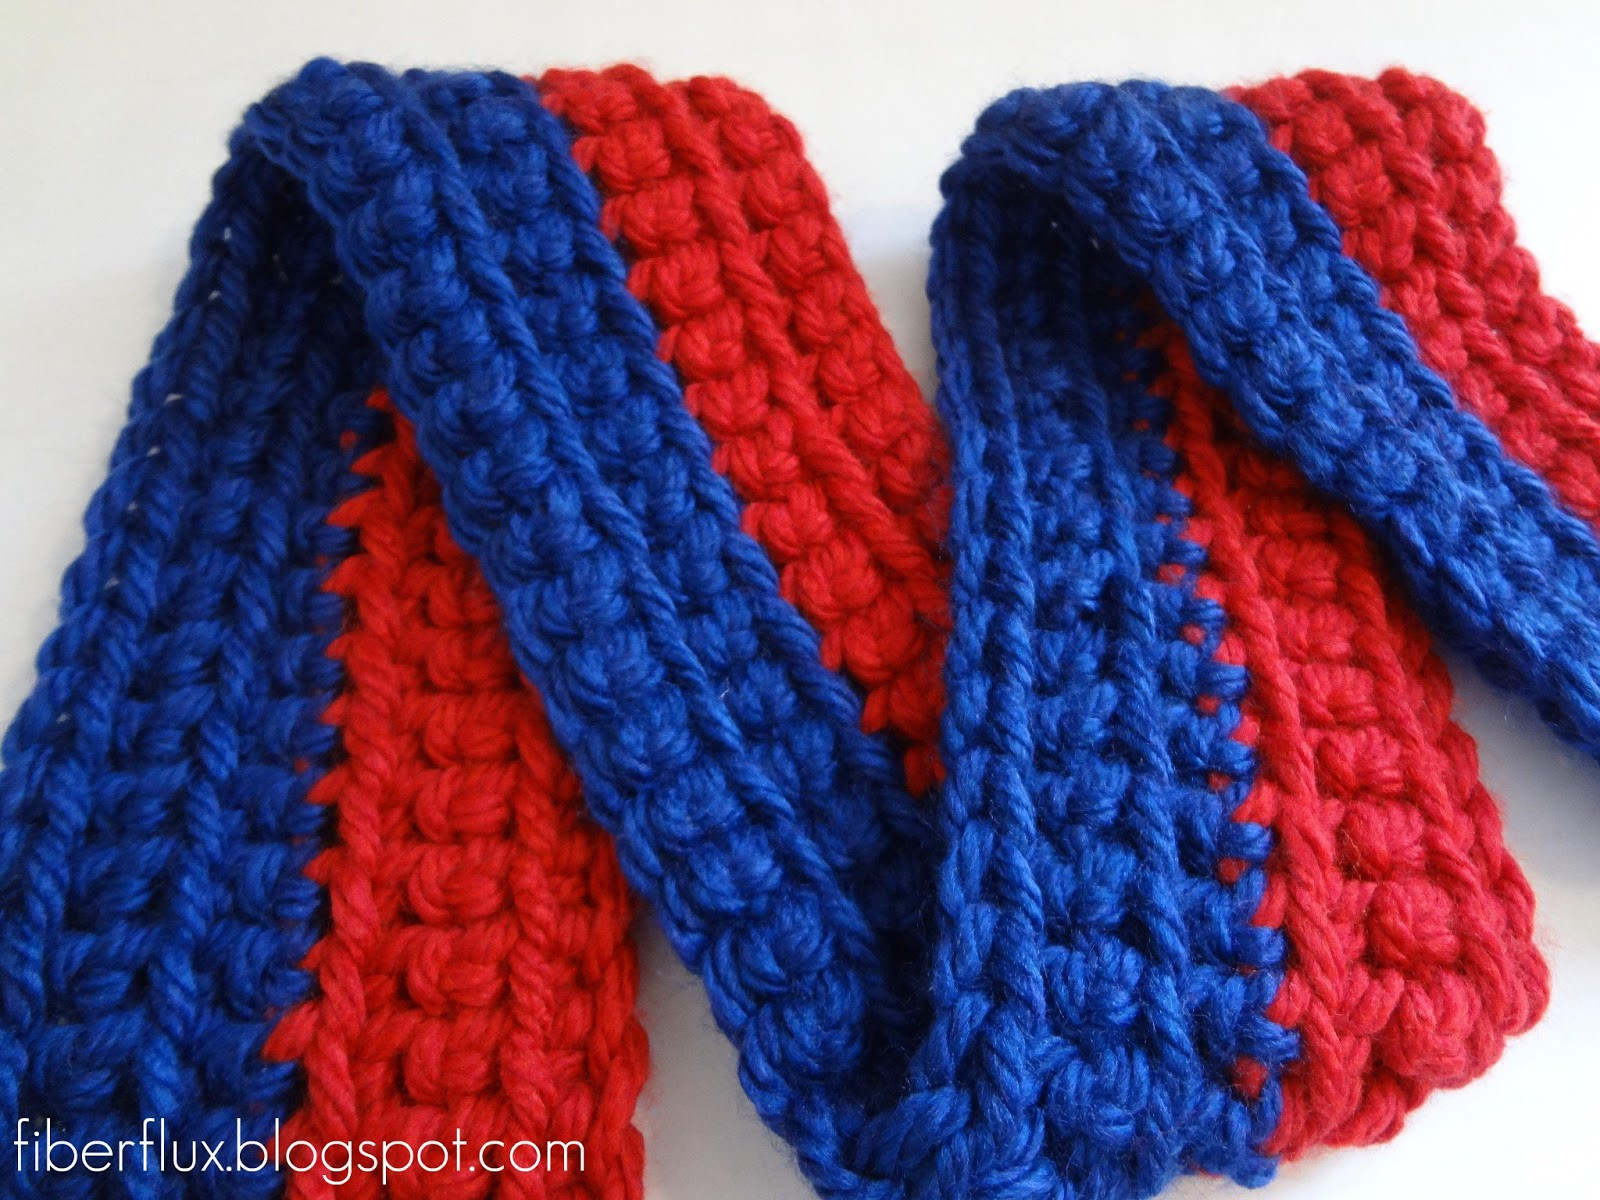 Crochet Scarf Awesome Fiber Flux Free Crochet Pattern Little Man Scarf Of Incredible 48 Images Crochet Scarf